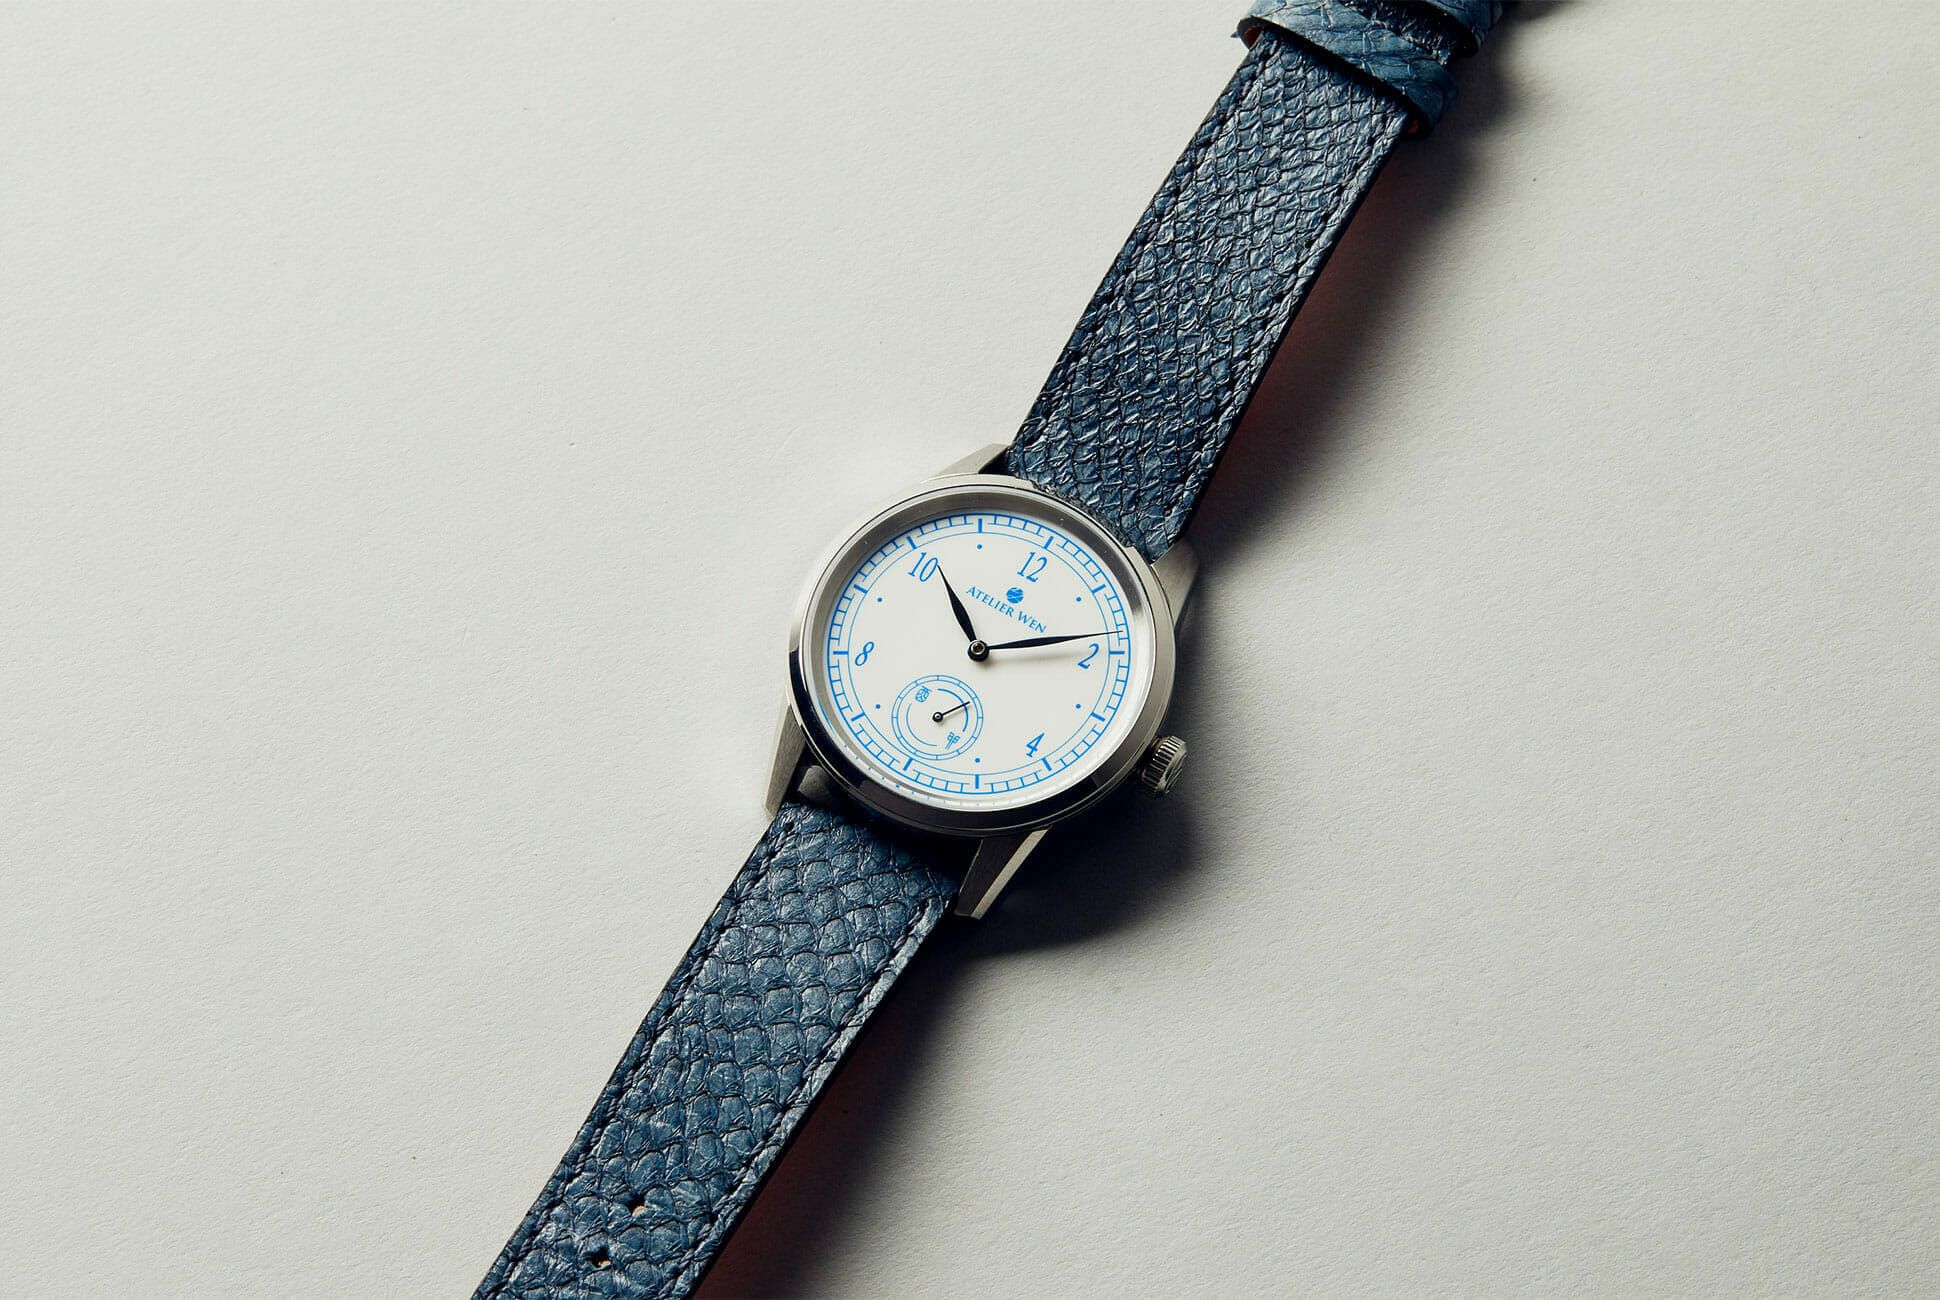 This-Affordable-Automatic-Watch-Has-One-of-the-Most-Stunning-Dials-Weve-Seen-Gear-Patrol-slide-1